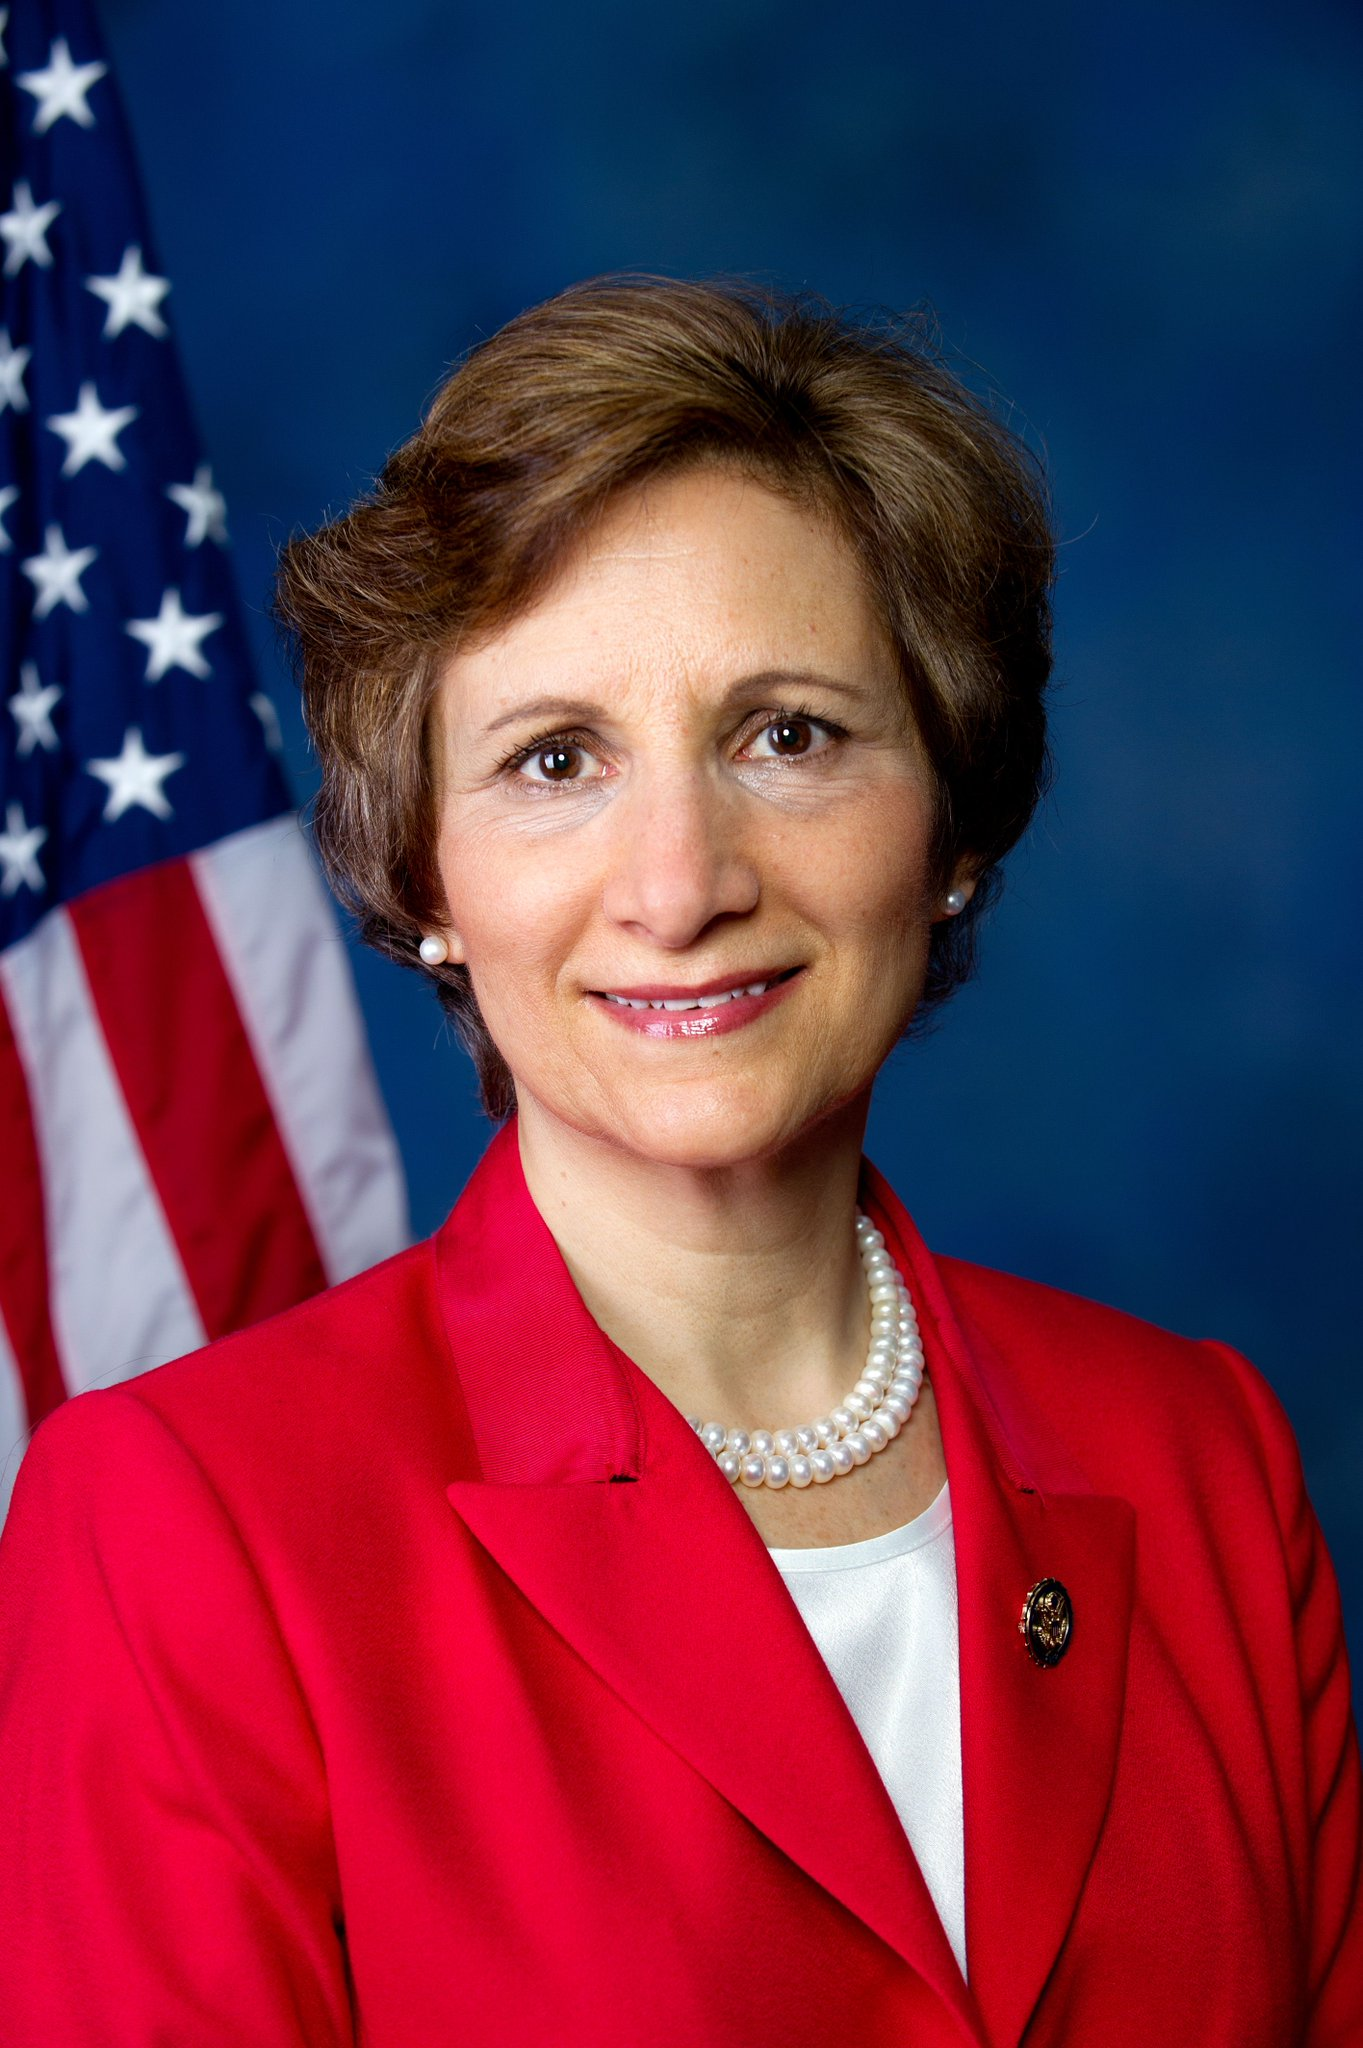 We are thrilled to have @RepBonamici kick off our REL briefing today at 3:00 in 430 Dirksen! https://t.co/IvujDstWOd #RELevant https://t.co/XbZr9YifEc